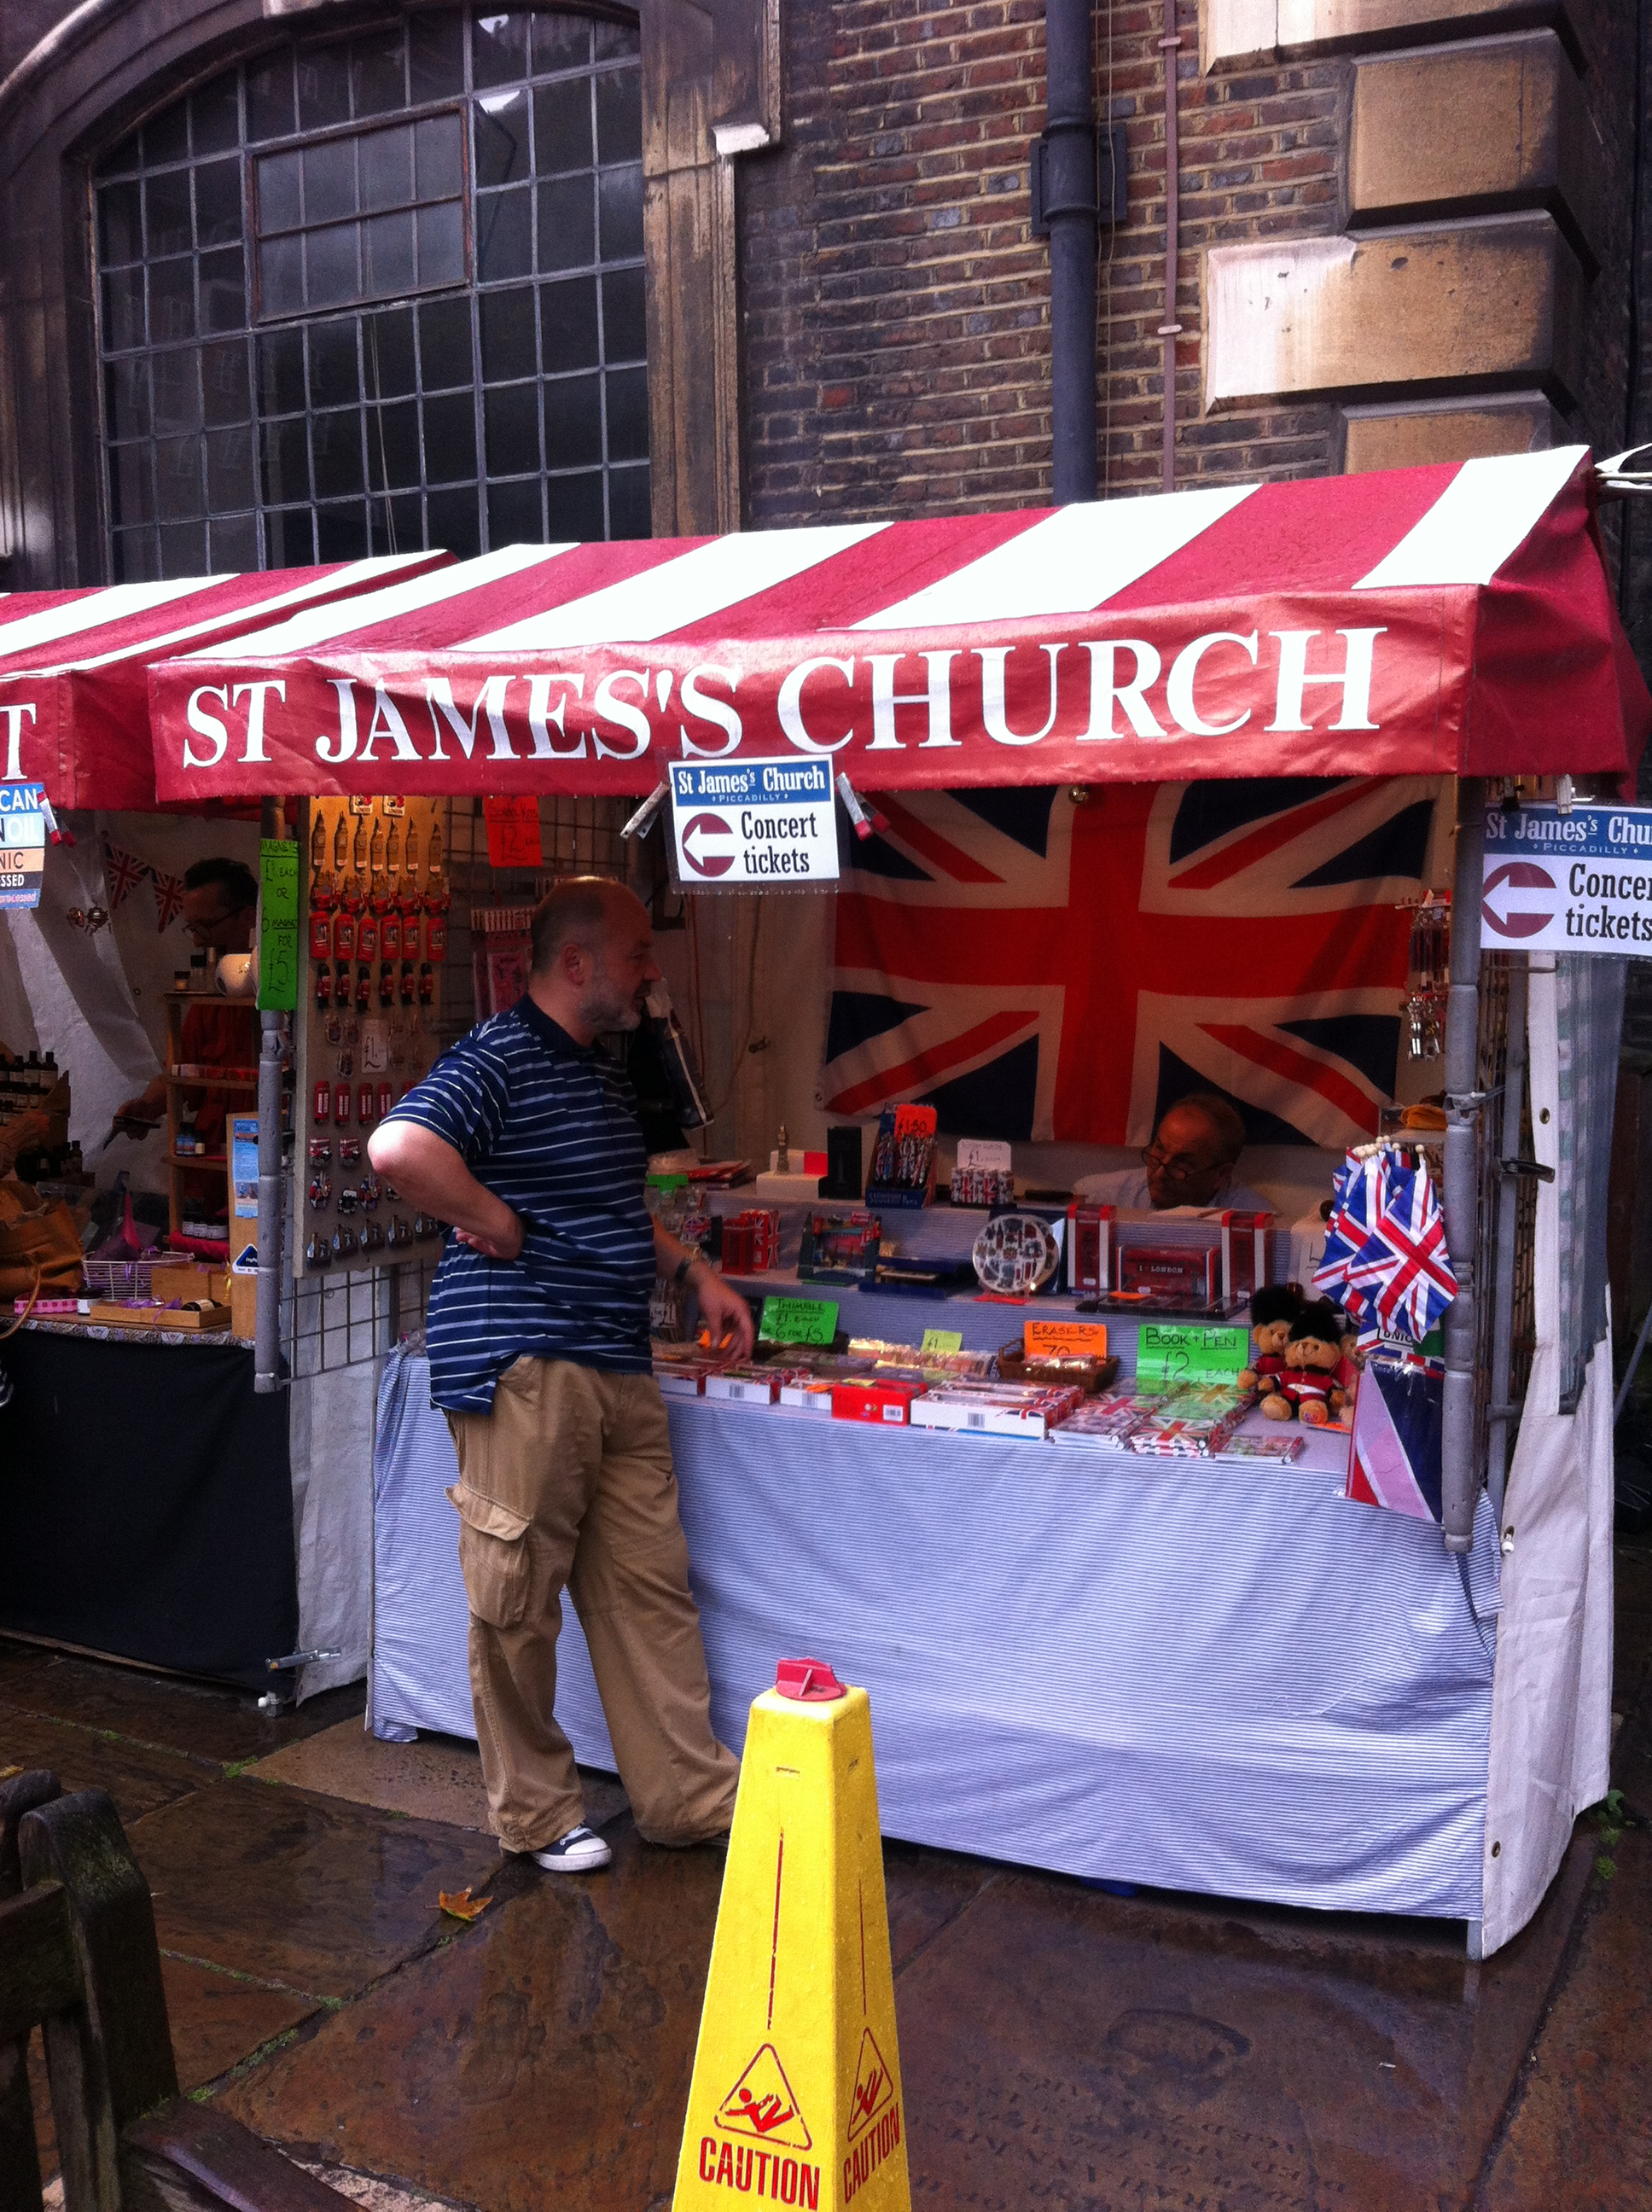 Market stalls in a church